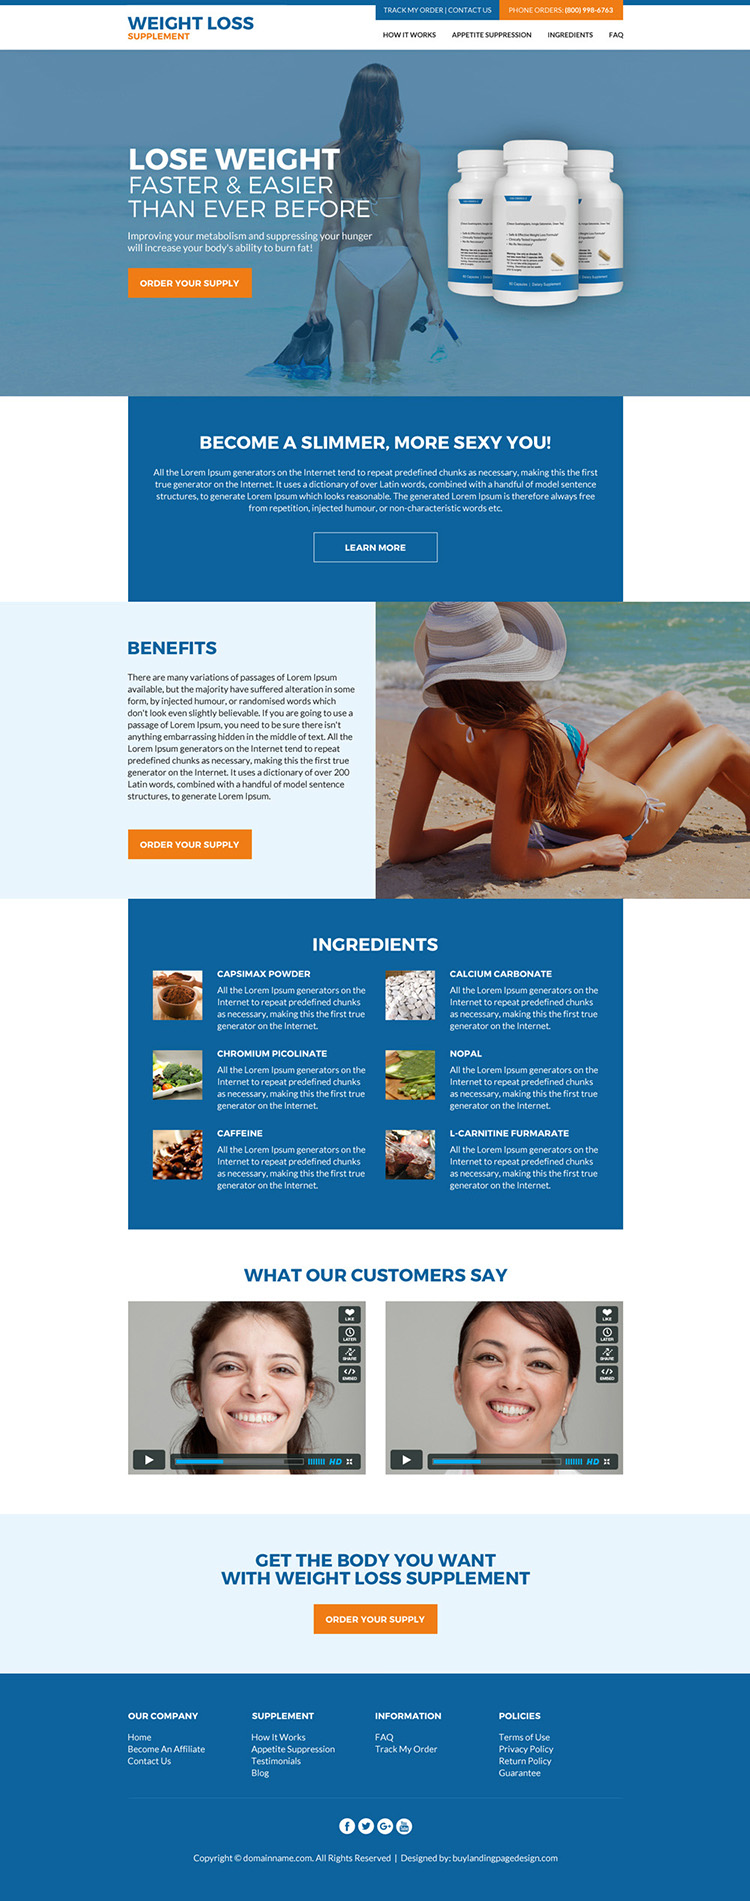 weight loss supplement responsive website design